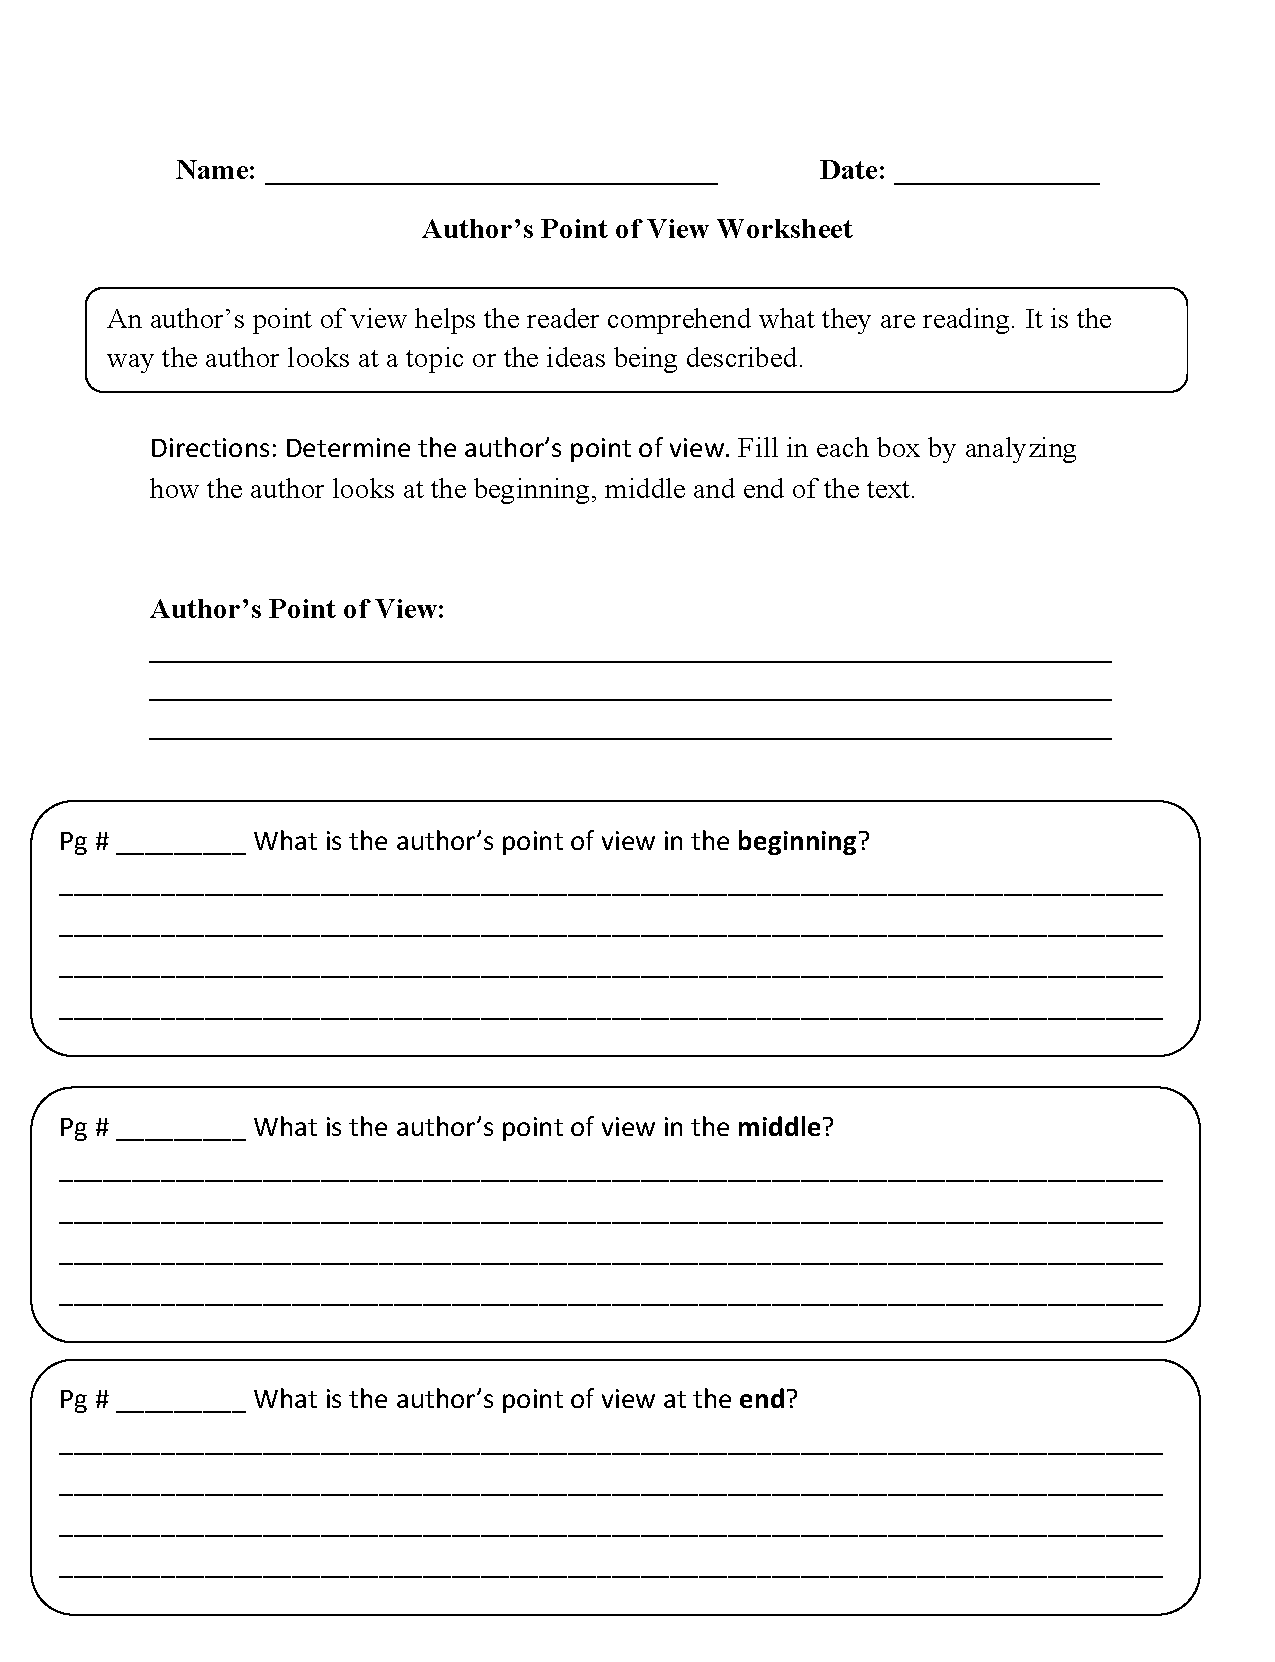 Weirdmailus  Splendid Englishlinxcom  Point Of View Worksheets With Entrancing Point Of View Worksheets With Lovely Measurement Word Problems Worksheets Also Citing Sources Worksheet In Addition Daily Language Review Grade  Worksheets And Magic Tree House Comprehension Worksheets As Well As Multiplication Drill Worksheets Rd Grade Additionally Esl Family Worksheet From Englishlinxcom With Weirdmailus  Entrancing Englishlinxcom  Point Of View Worksheets With Lovely Point Of View Worksheets And Splendid Measurement Word Problems Worksheets Also Citing Sources Worksheet In Addition Daily Language Review Grade  Worksheets From Englishlinxcom